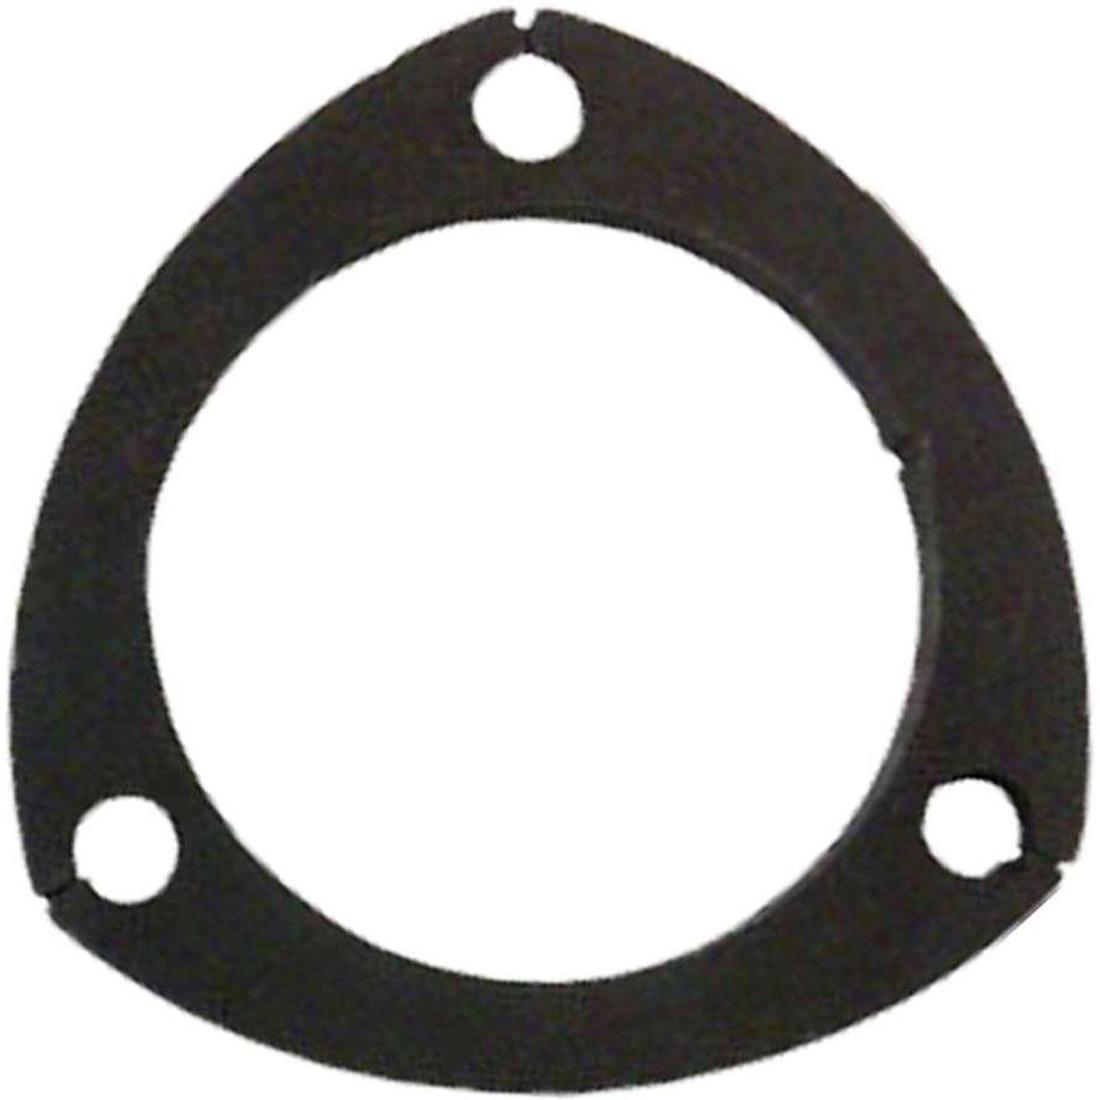 "Universal 3 Bolt 3 1/2"" Exhaust Laser Cut Flange Plate image"